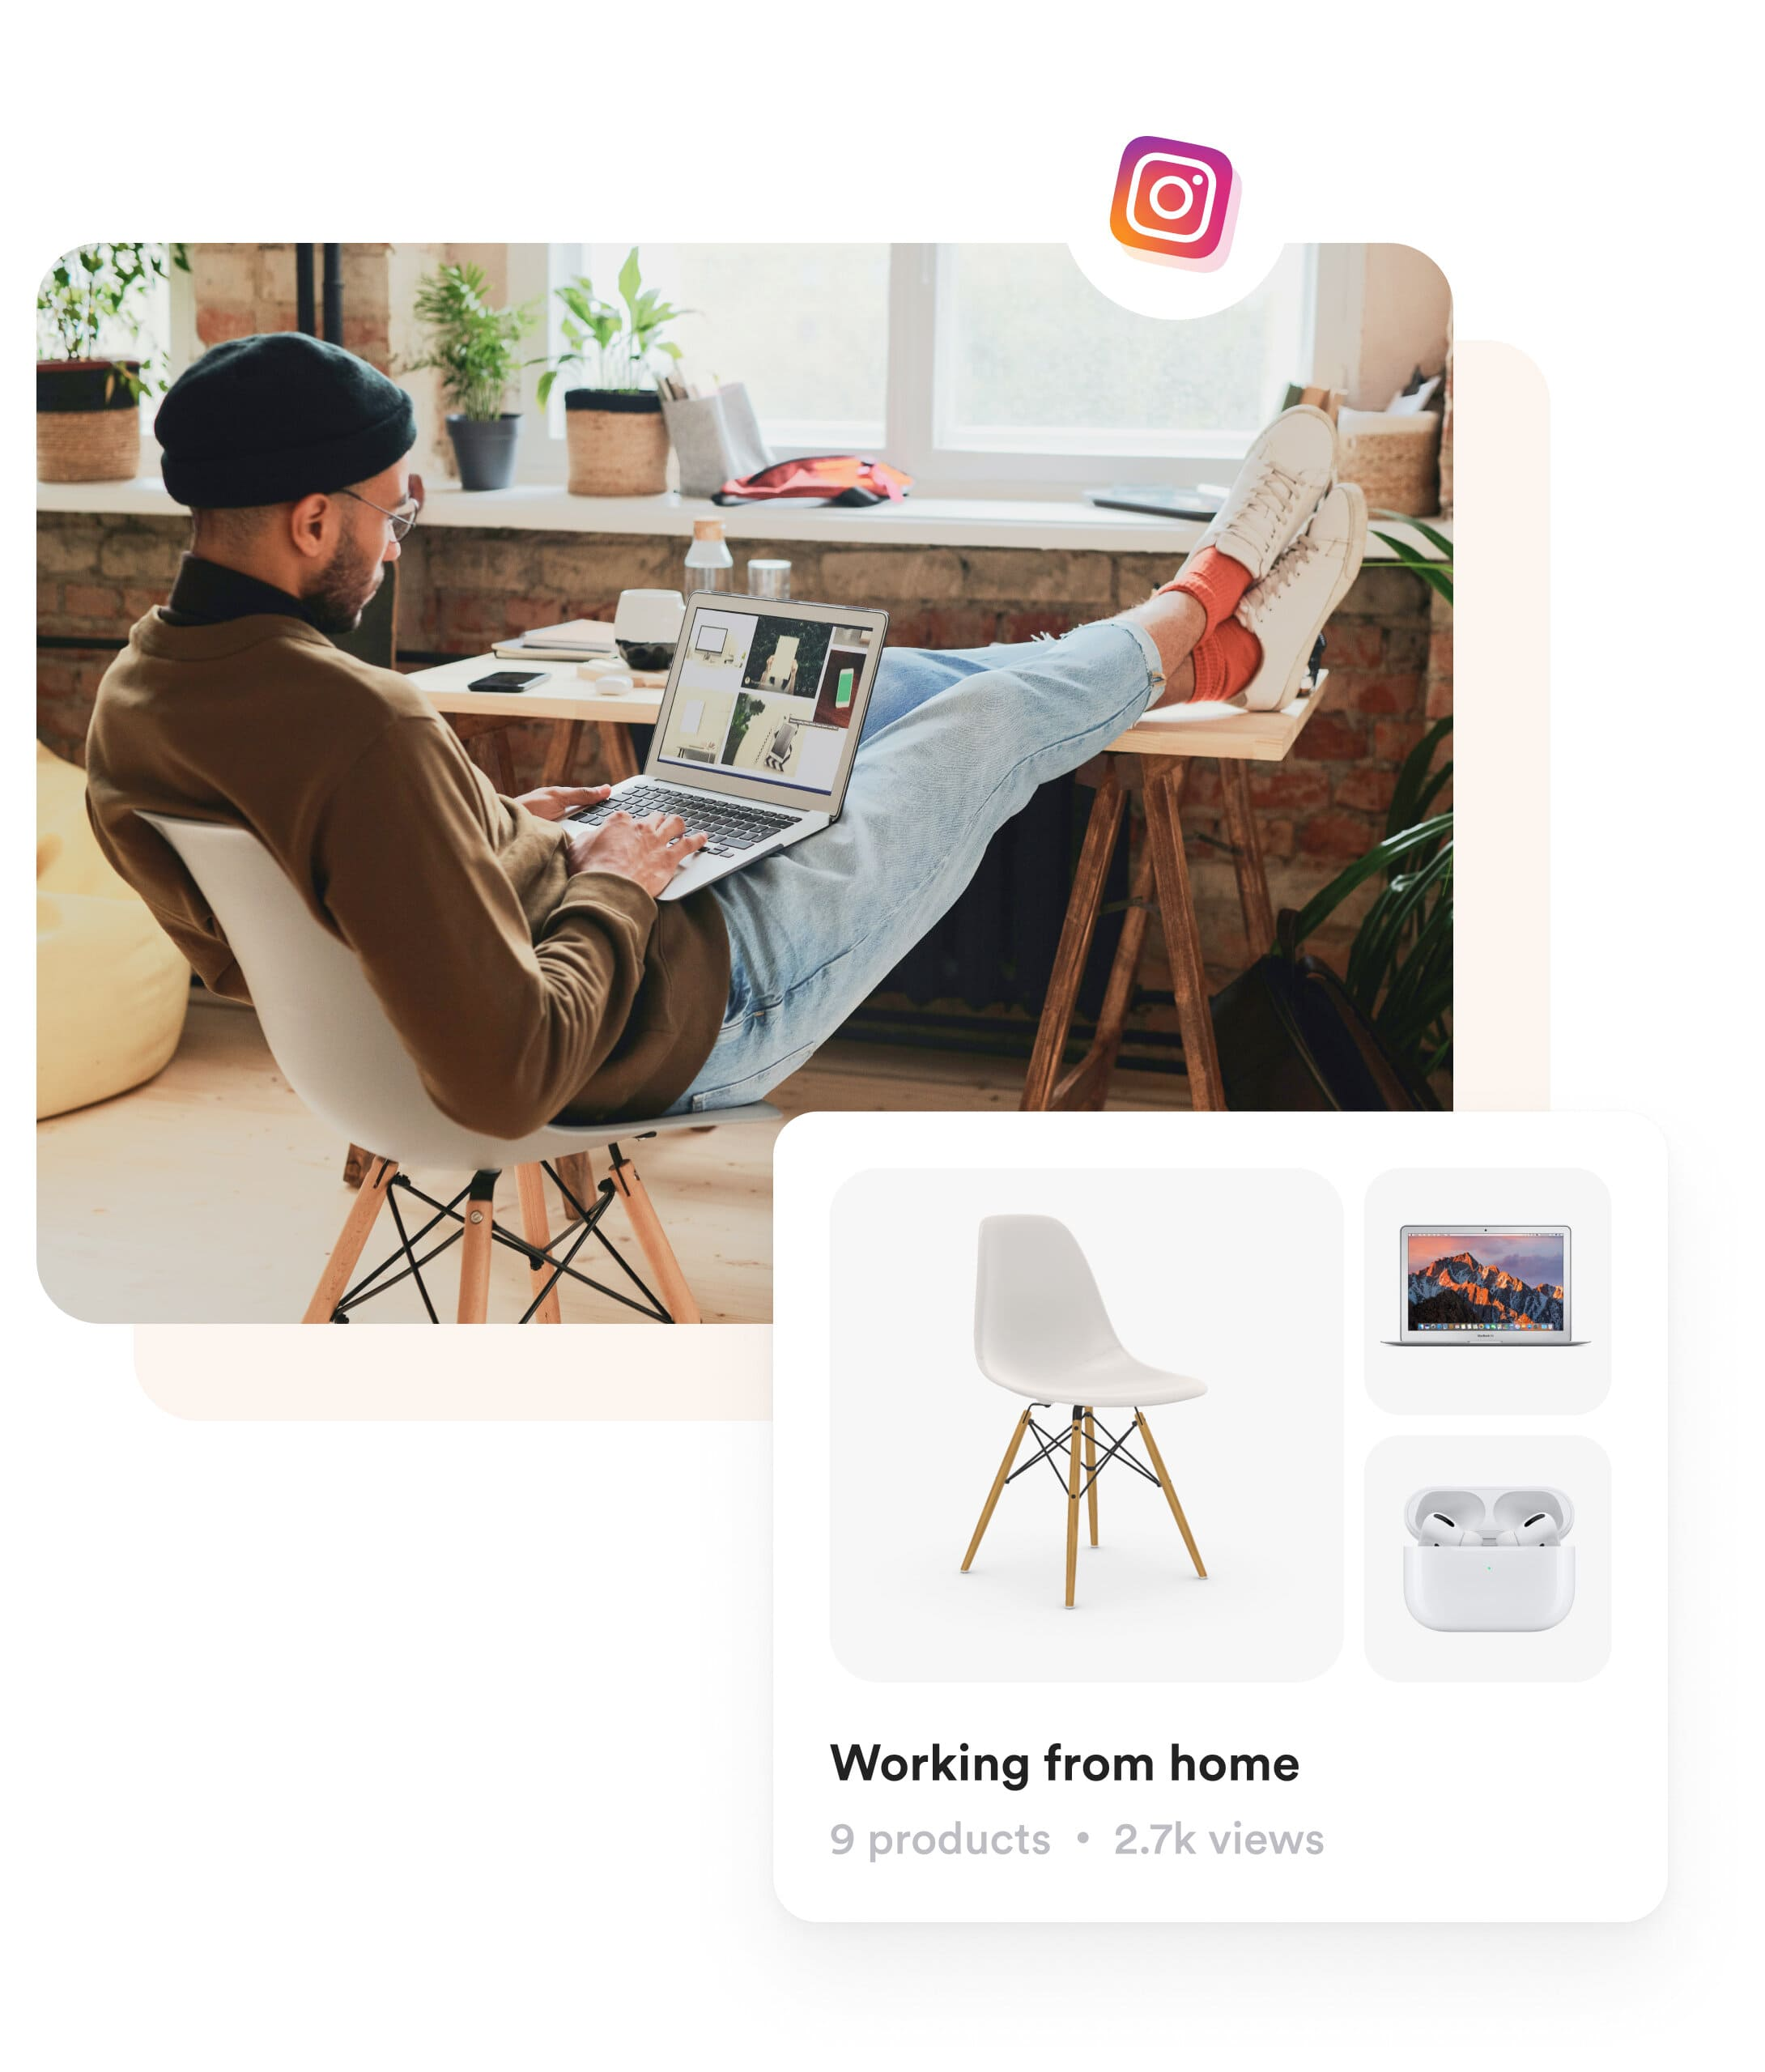 A man working from home and a shopper.com product card is showing showcasing the products used by the man in the image